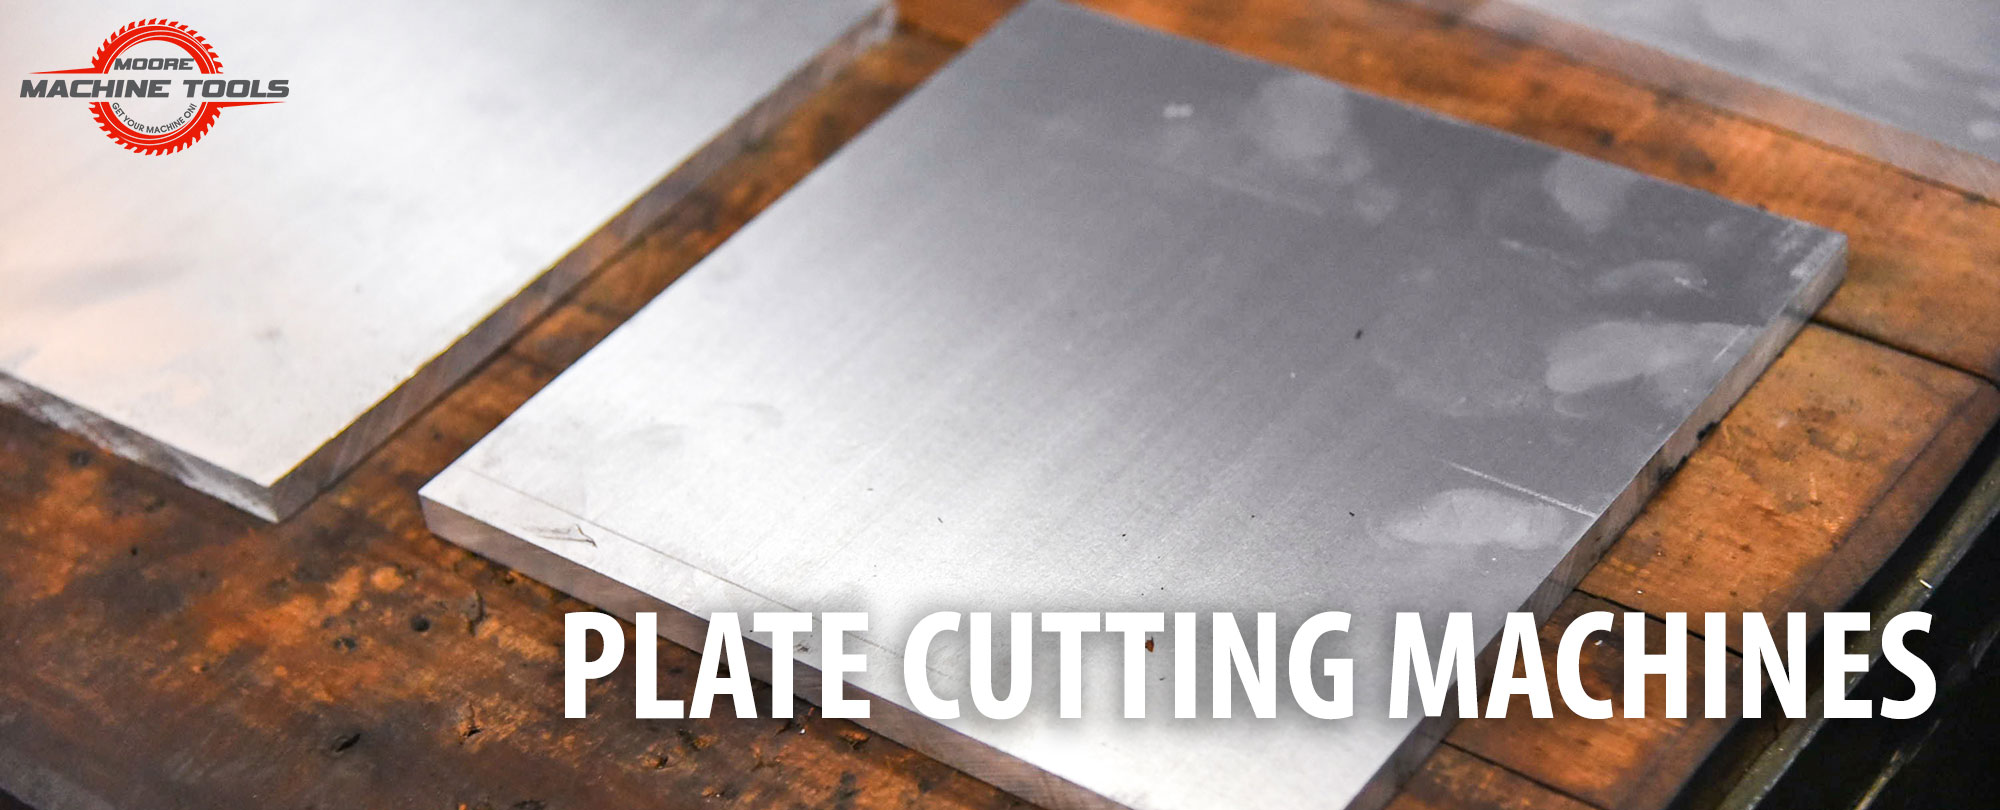 The Best Plate Cutting Machines by Moore Machine Tools